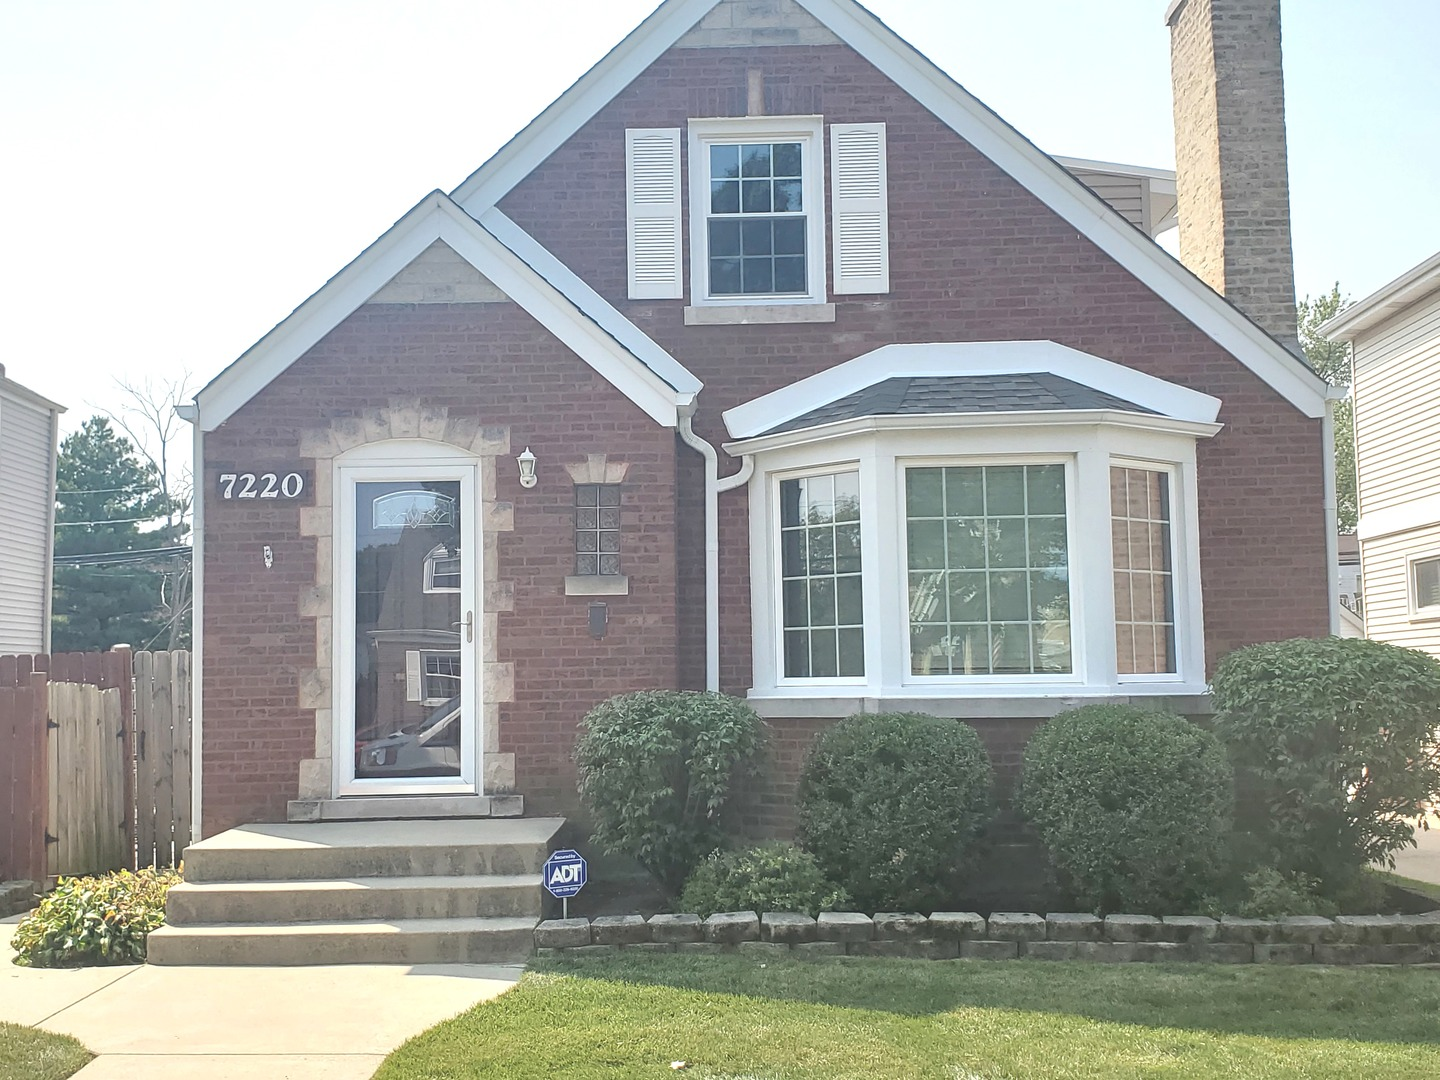 7220 N Odell Exterior Photo